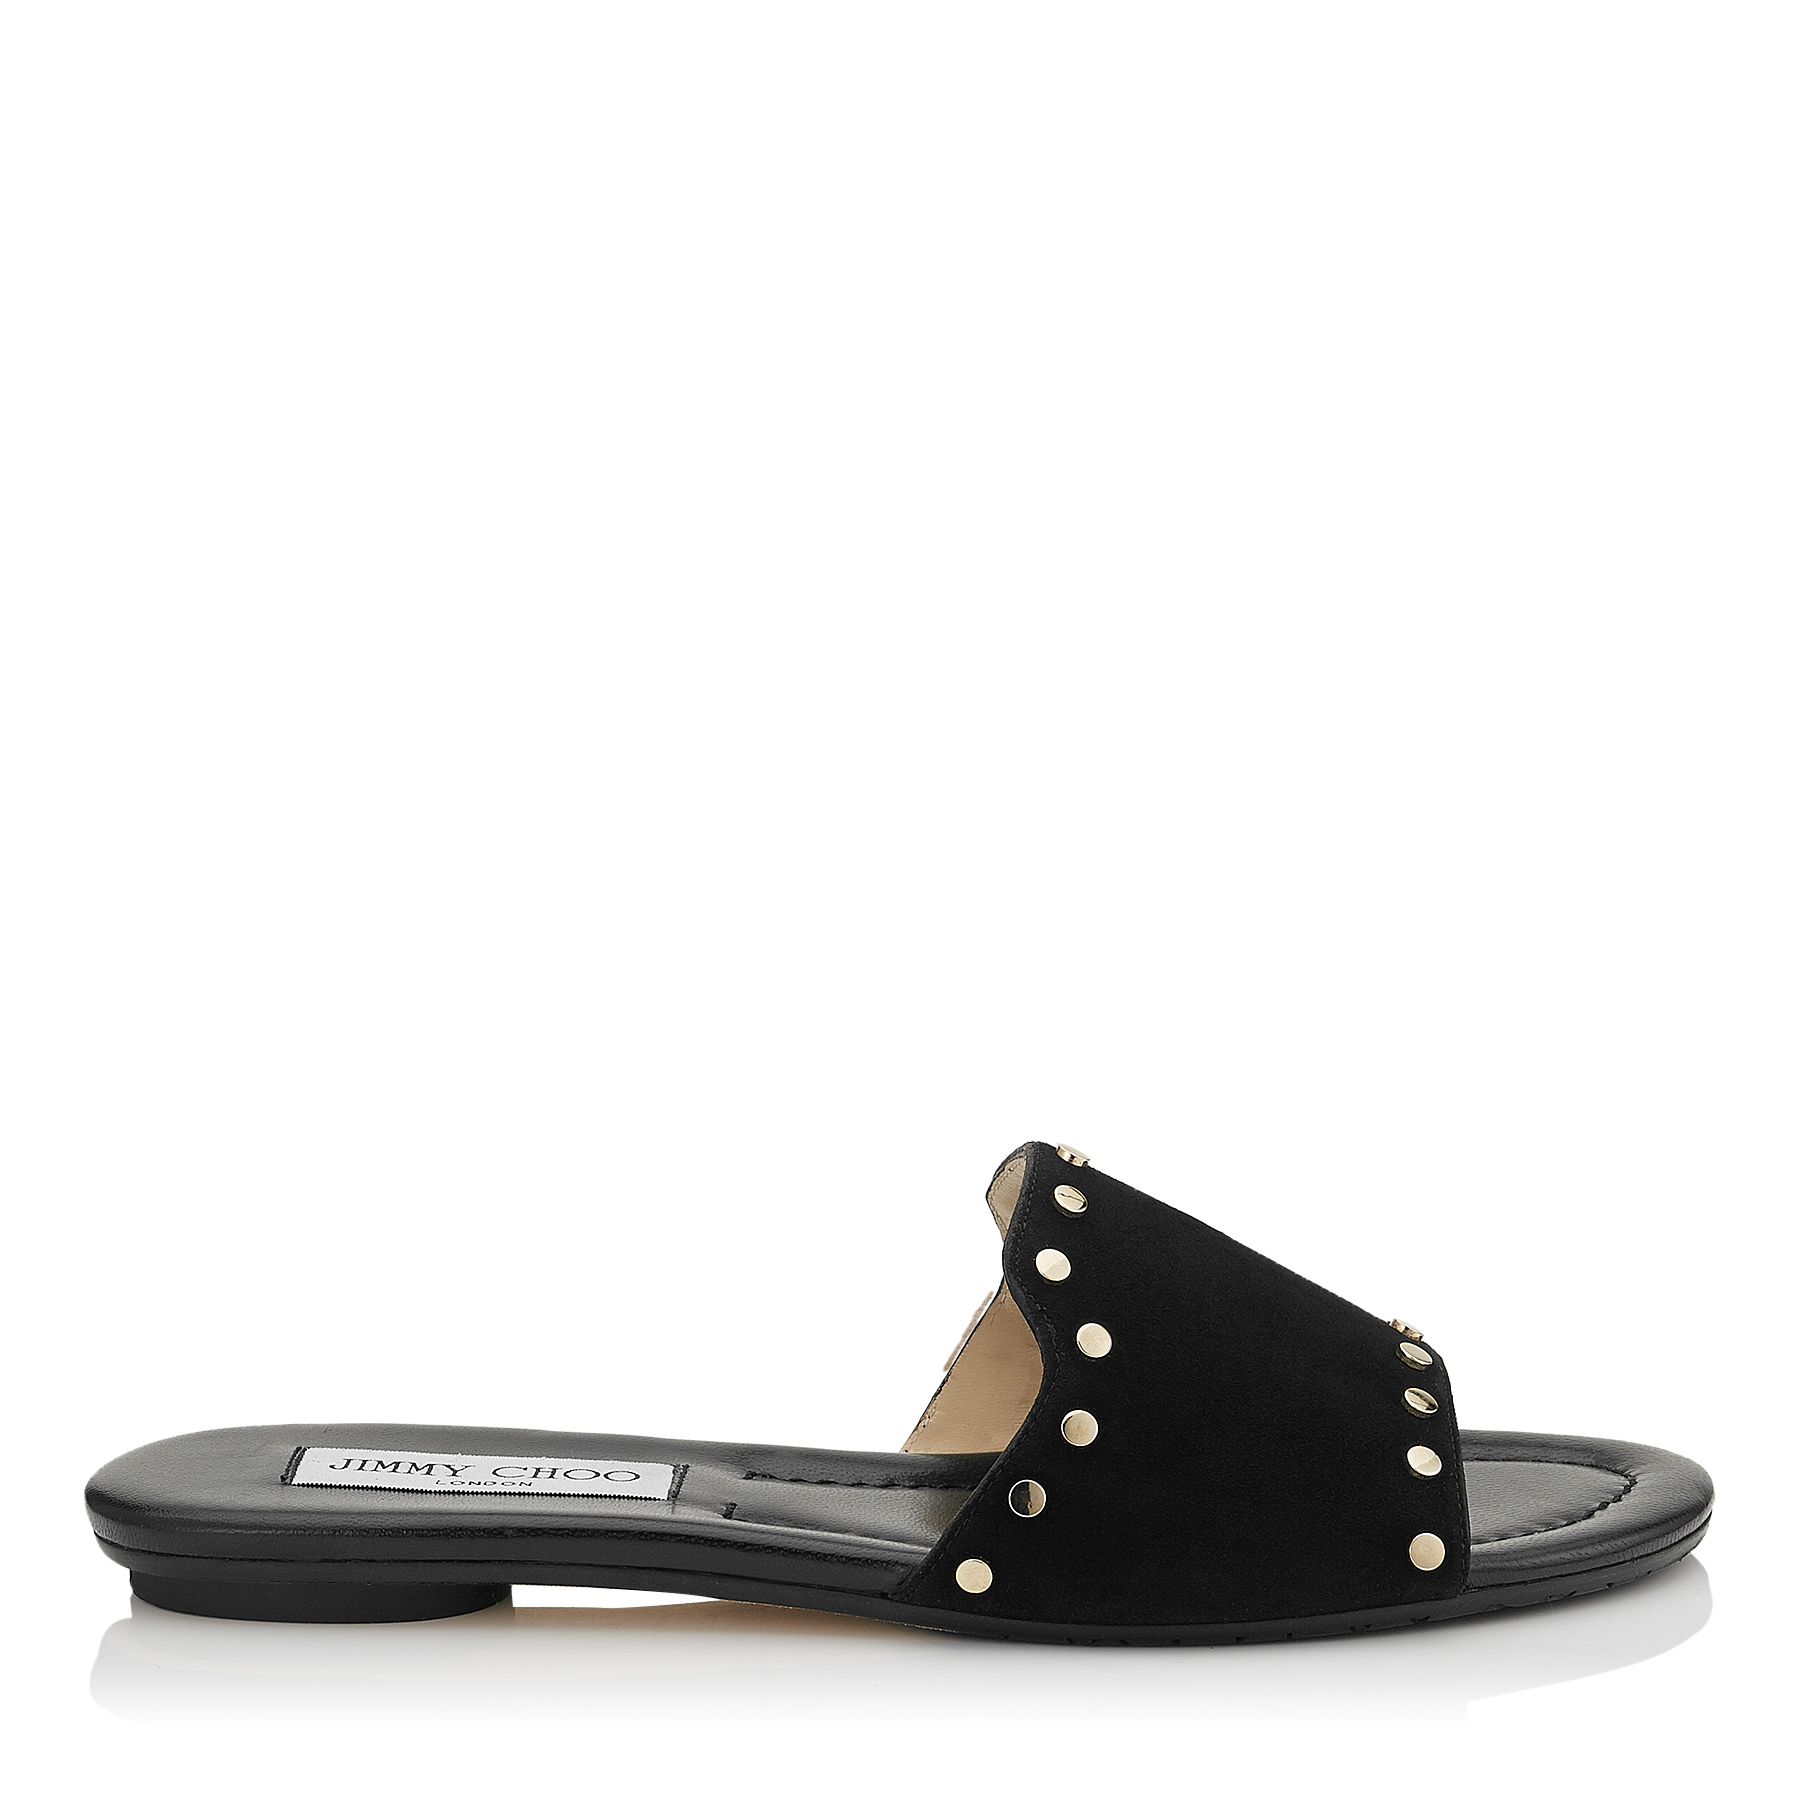 NANDA Black Suede Slides with Gold Studs by Jimmy Choo